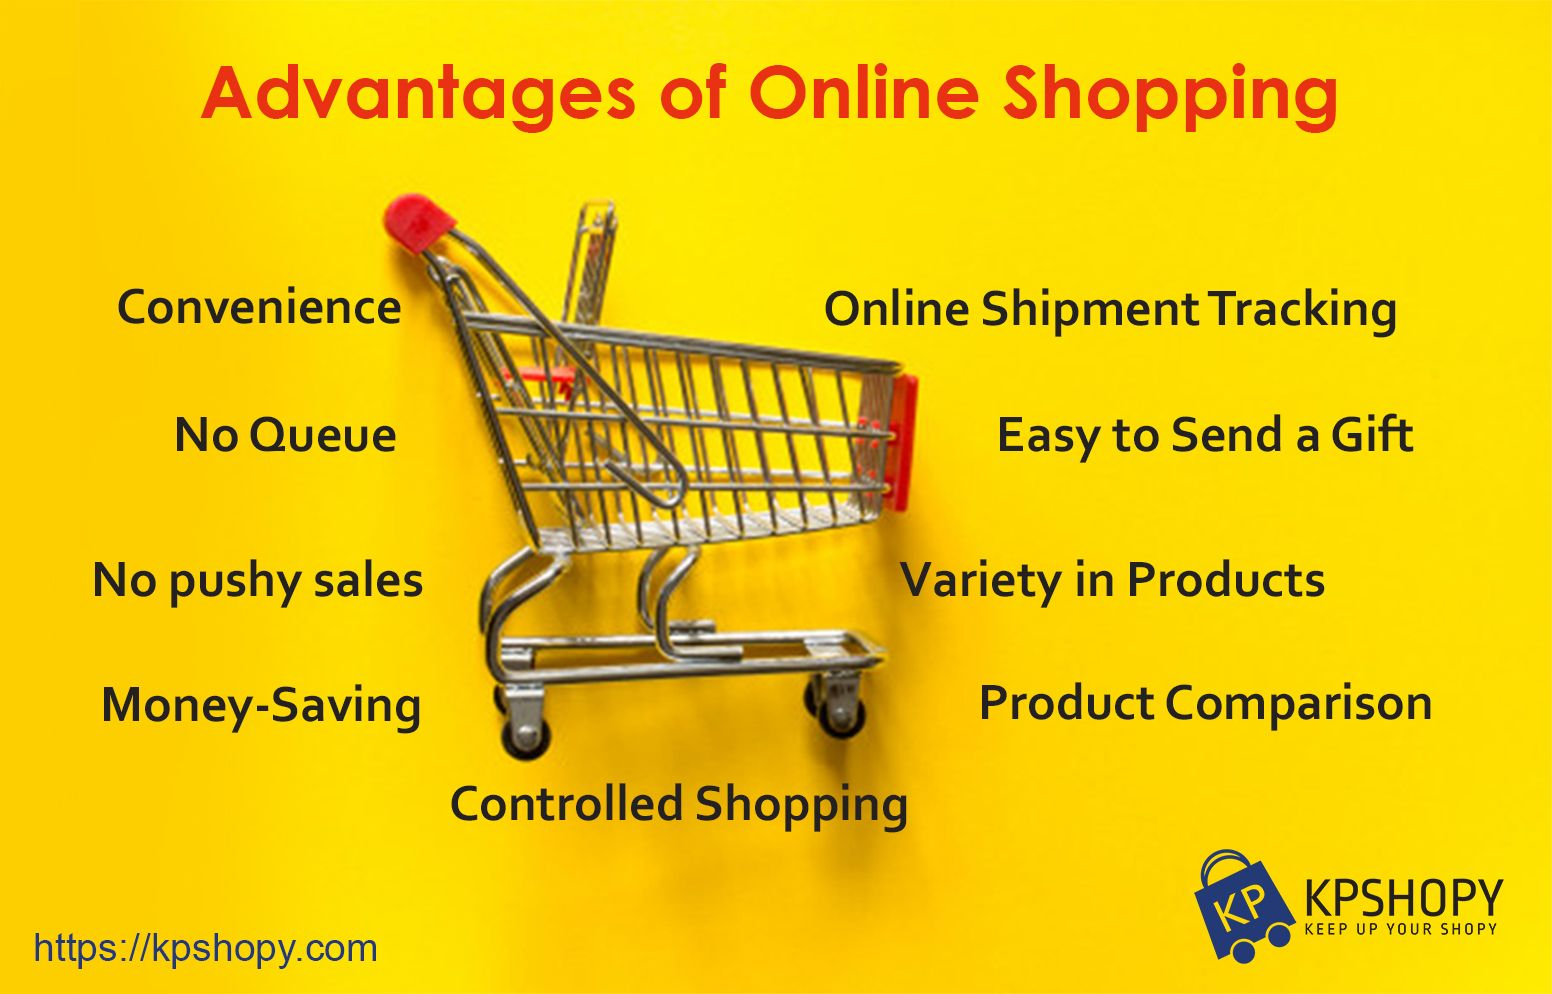 Advantages and disadvantages of online shopping in 2020